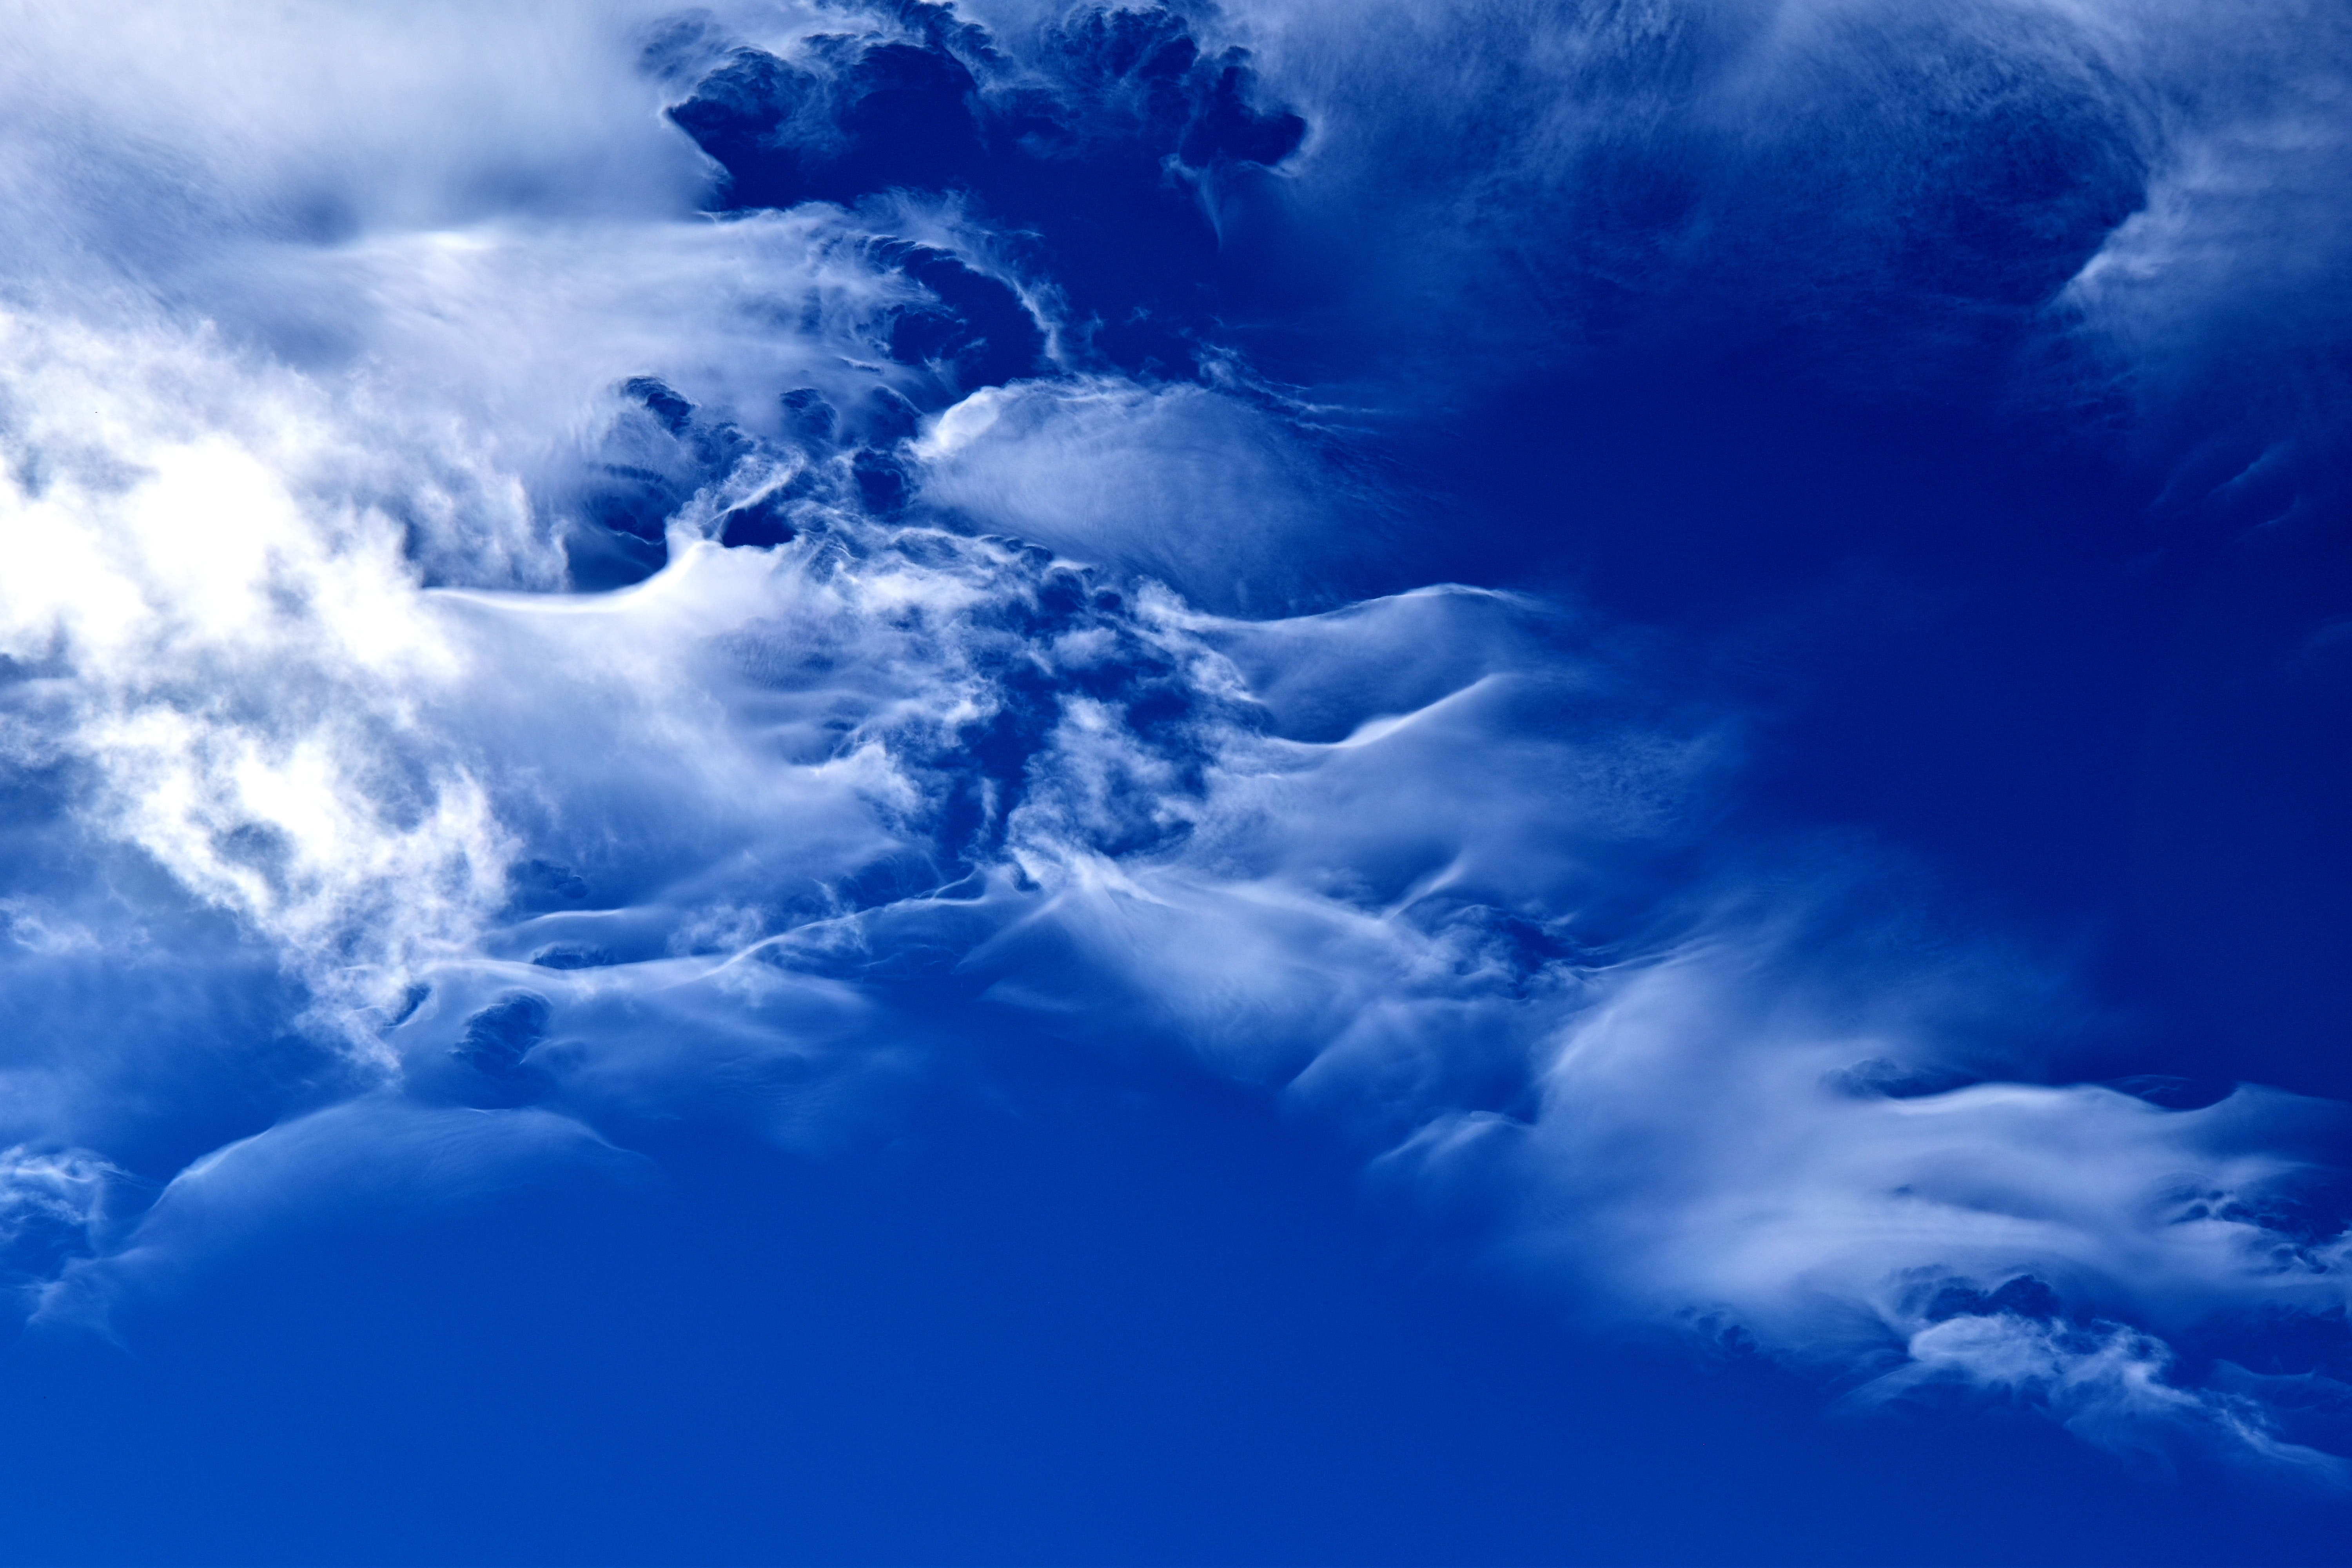 The blue sky above a playful veil of clouds